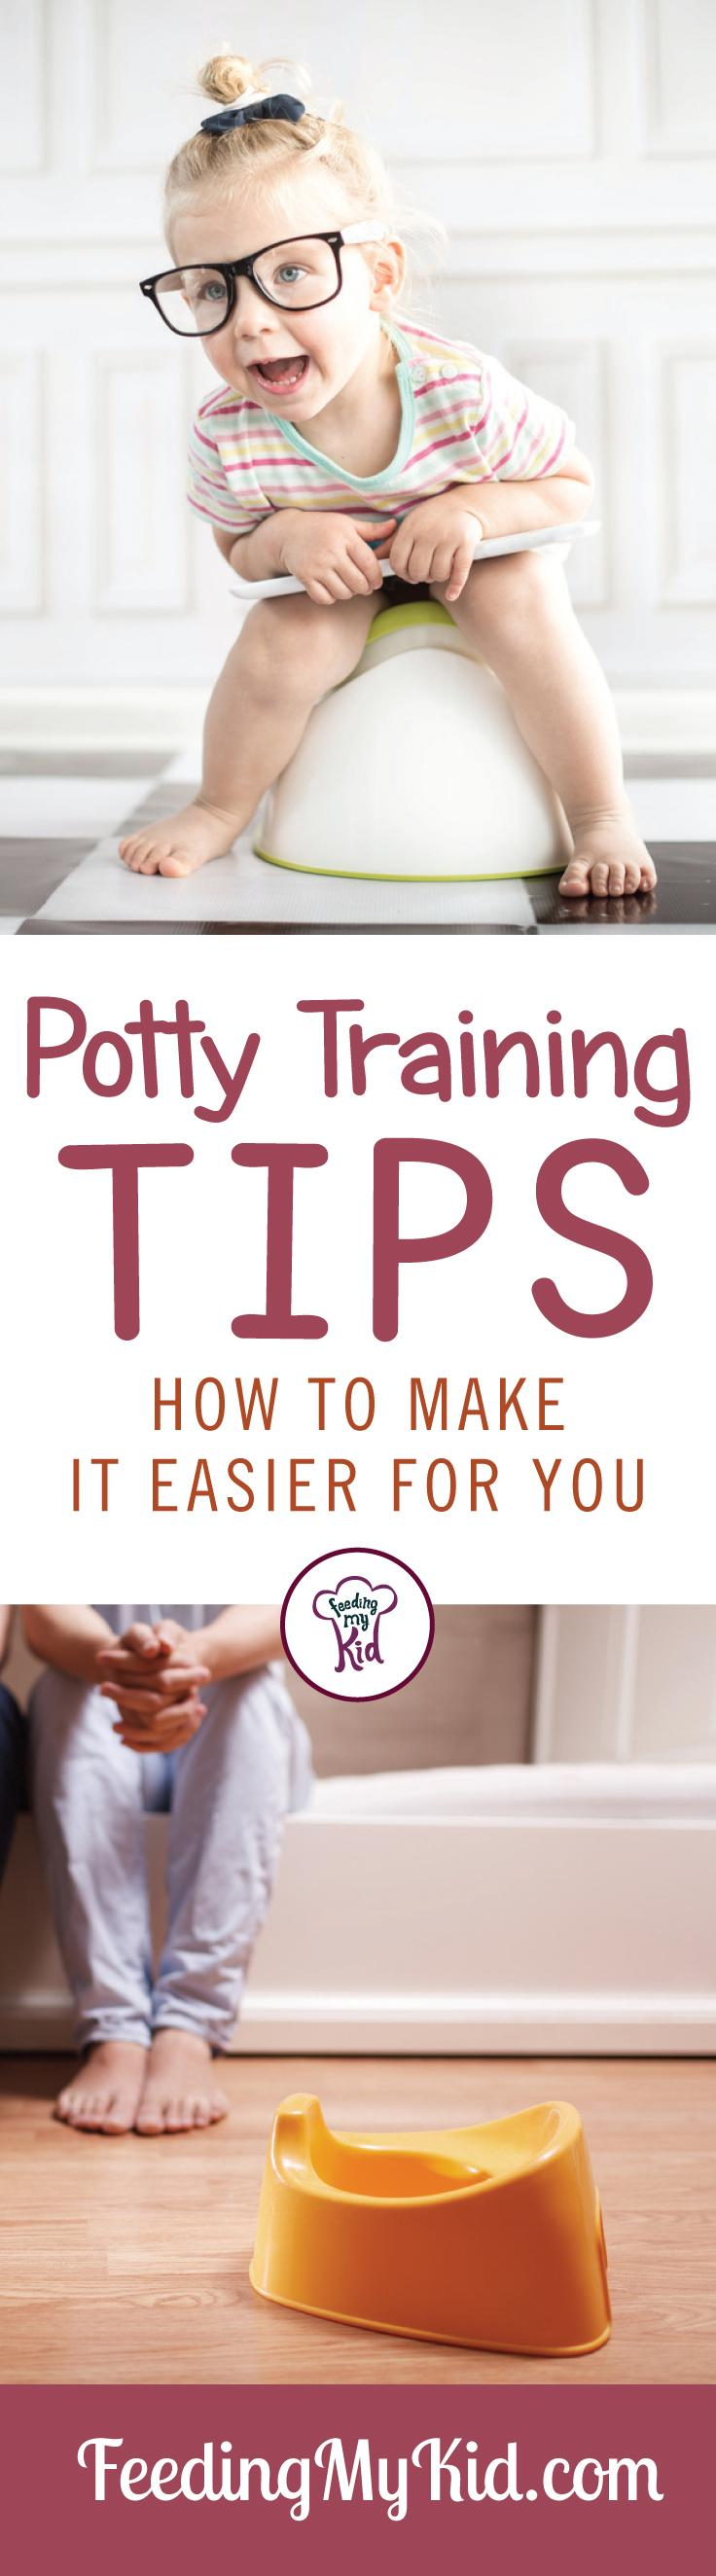 Great potty training tips to help get your kid on the toilet faster. And some successes too. It worked for one mom, it can work for you too.